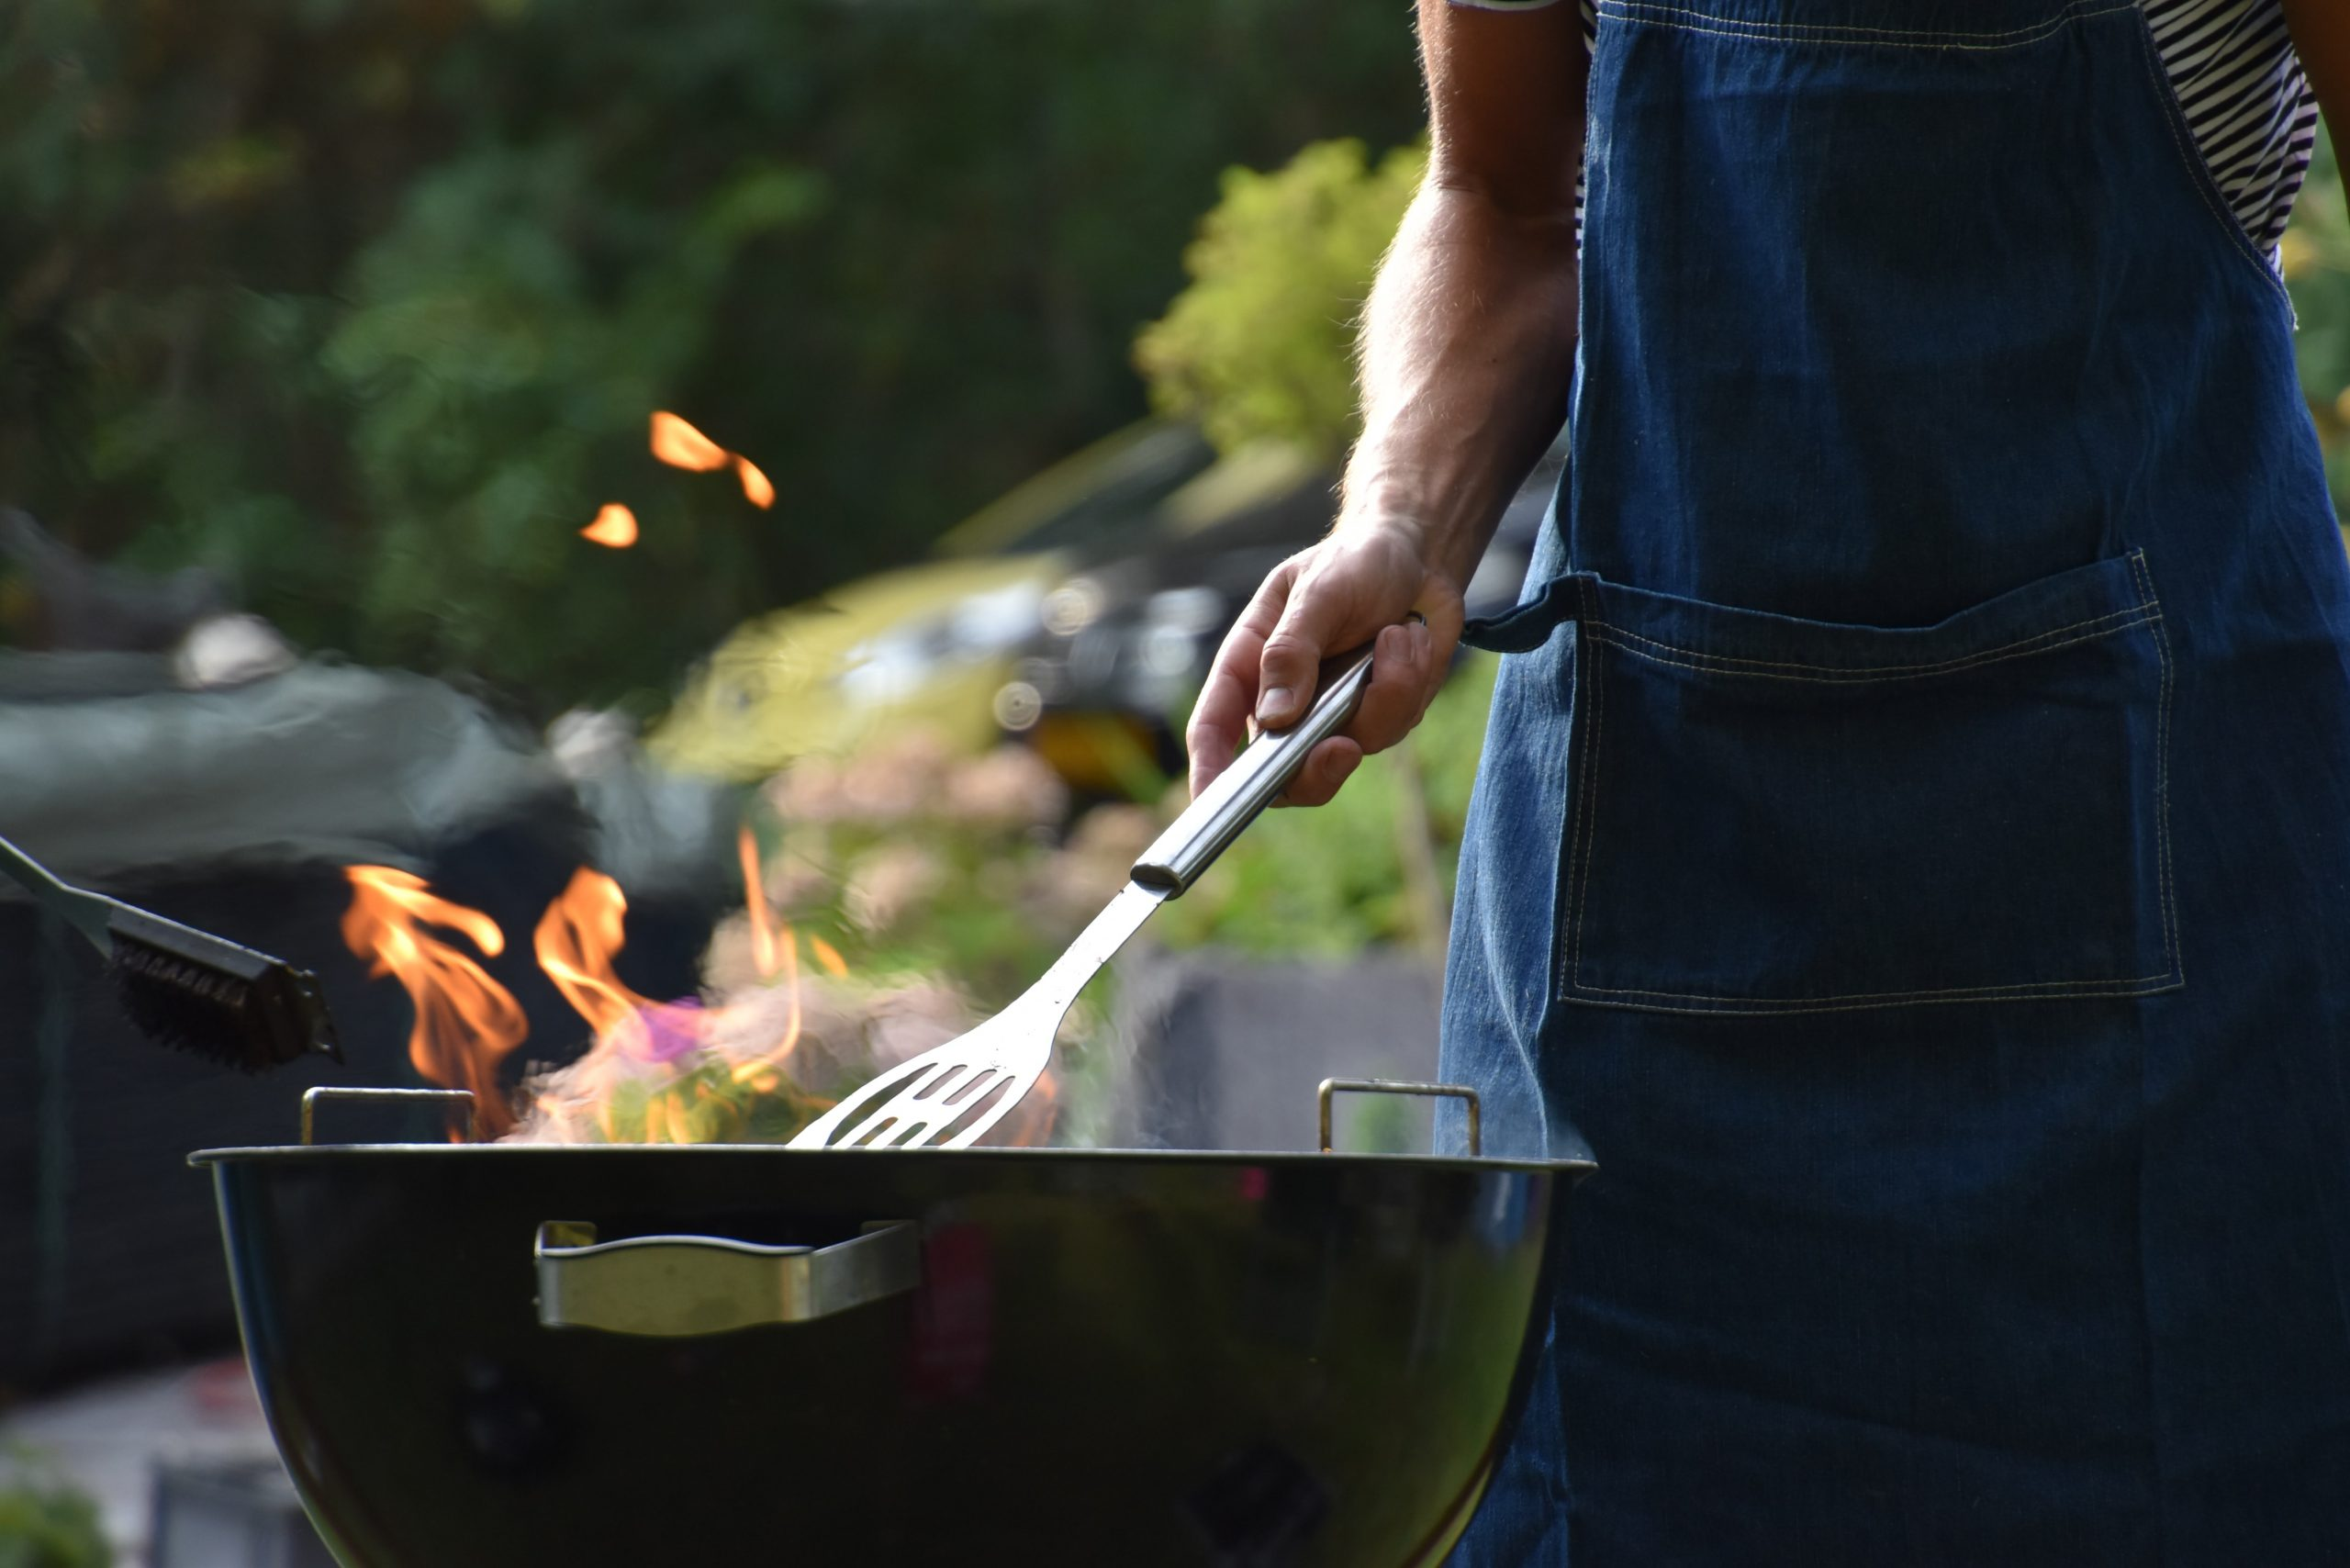 A man barbecuing